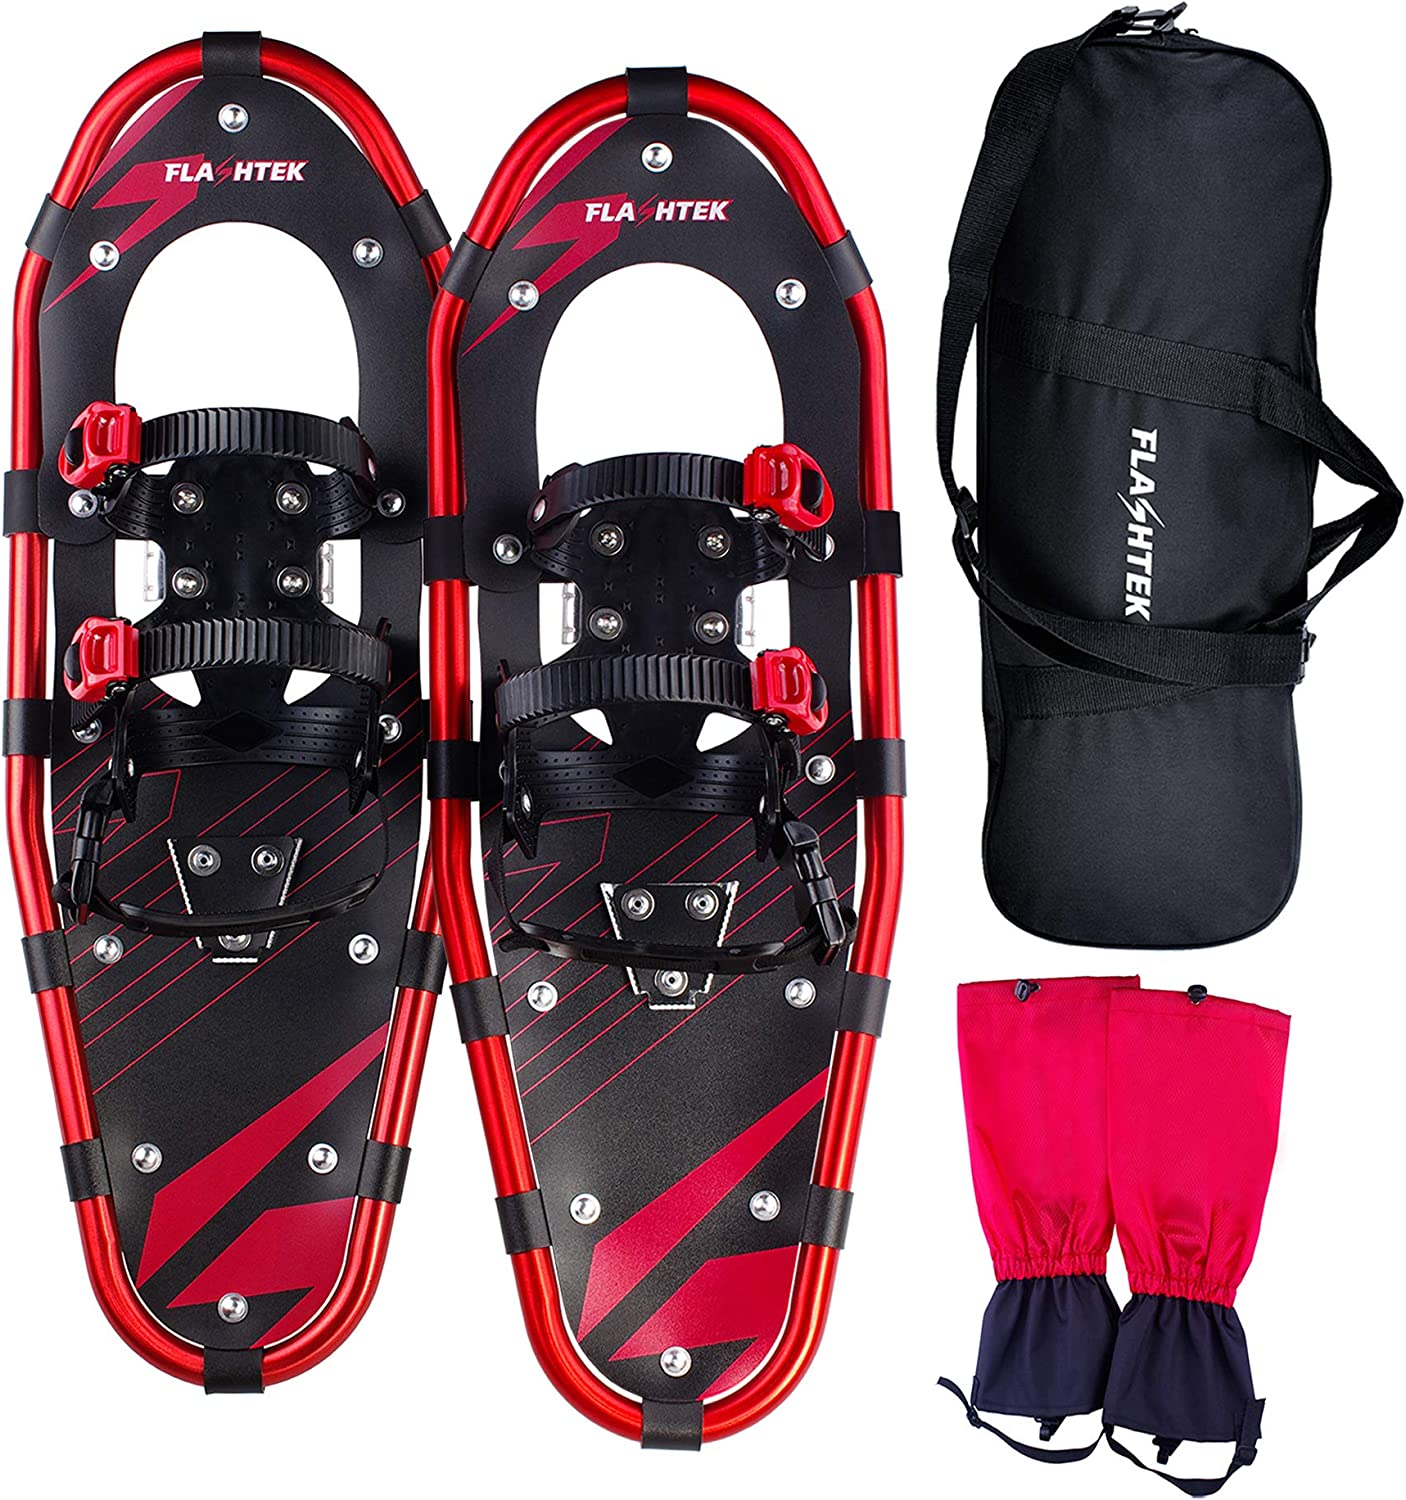 FLASHTEK 21  Snowshoes for Men and Women, Light Weight Aluminum Terrain Snowshoes + Free Carrying Tote Bag + Gaiters (Red)